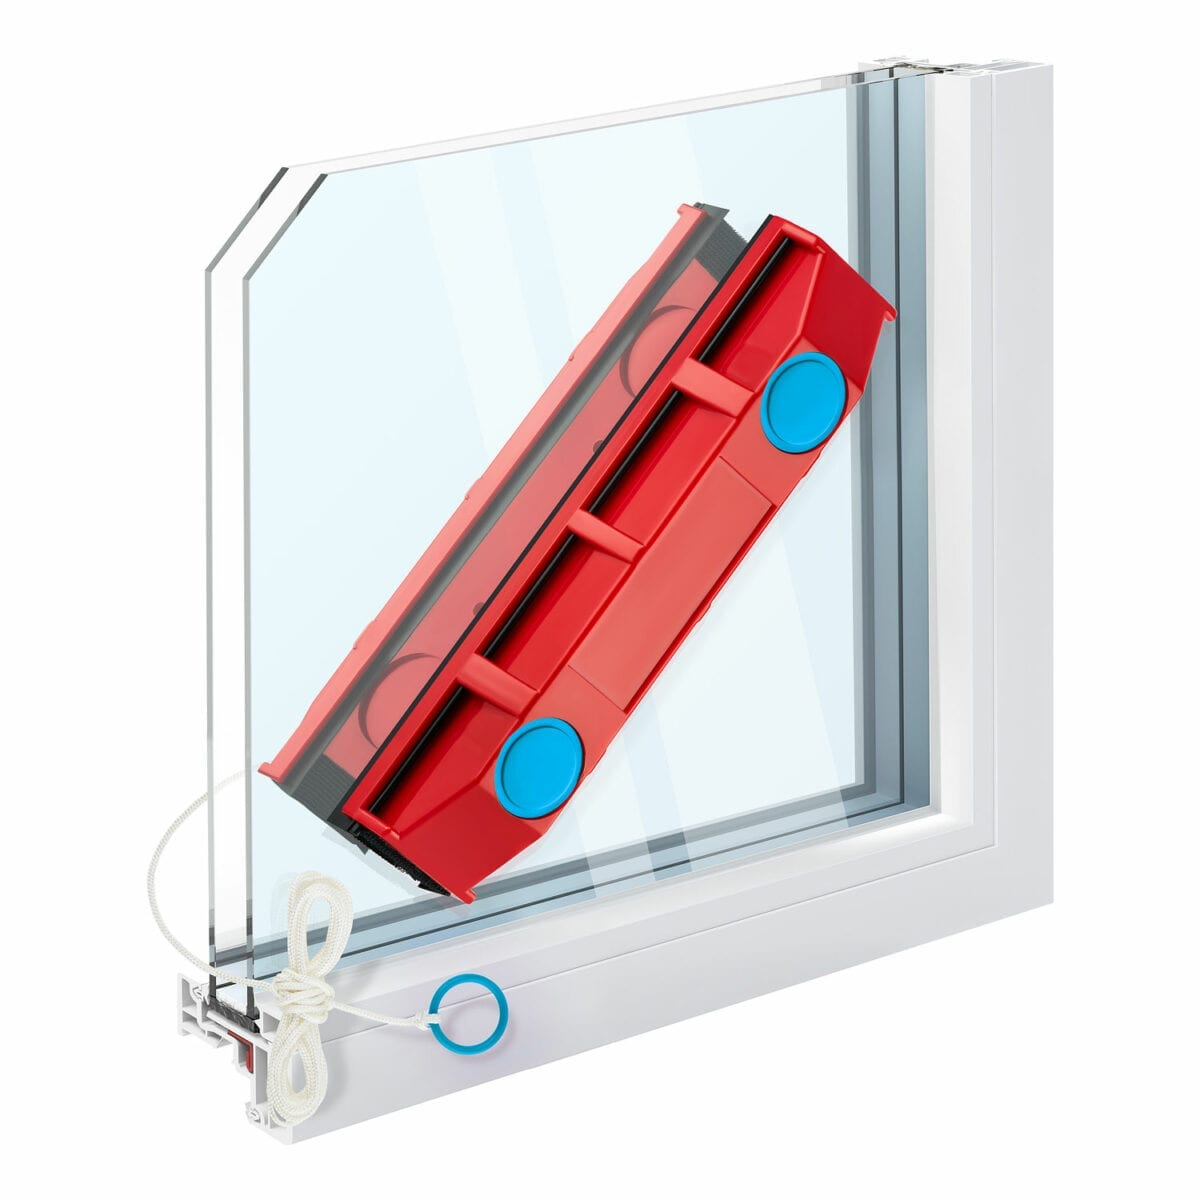 The Glider D2 magnetic window cleaner